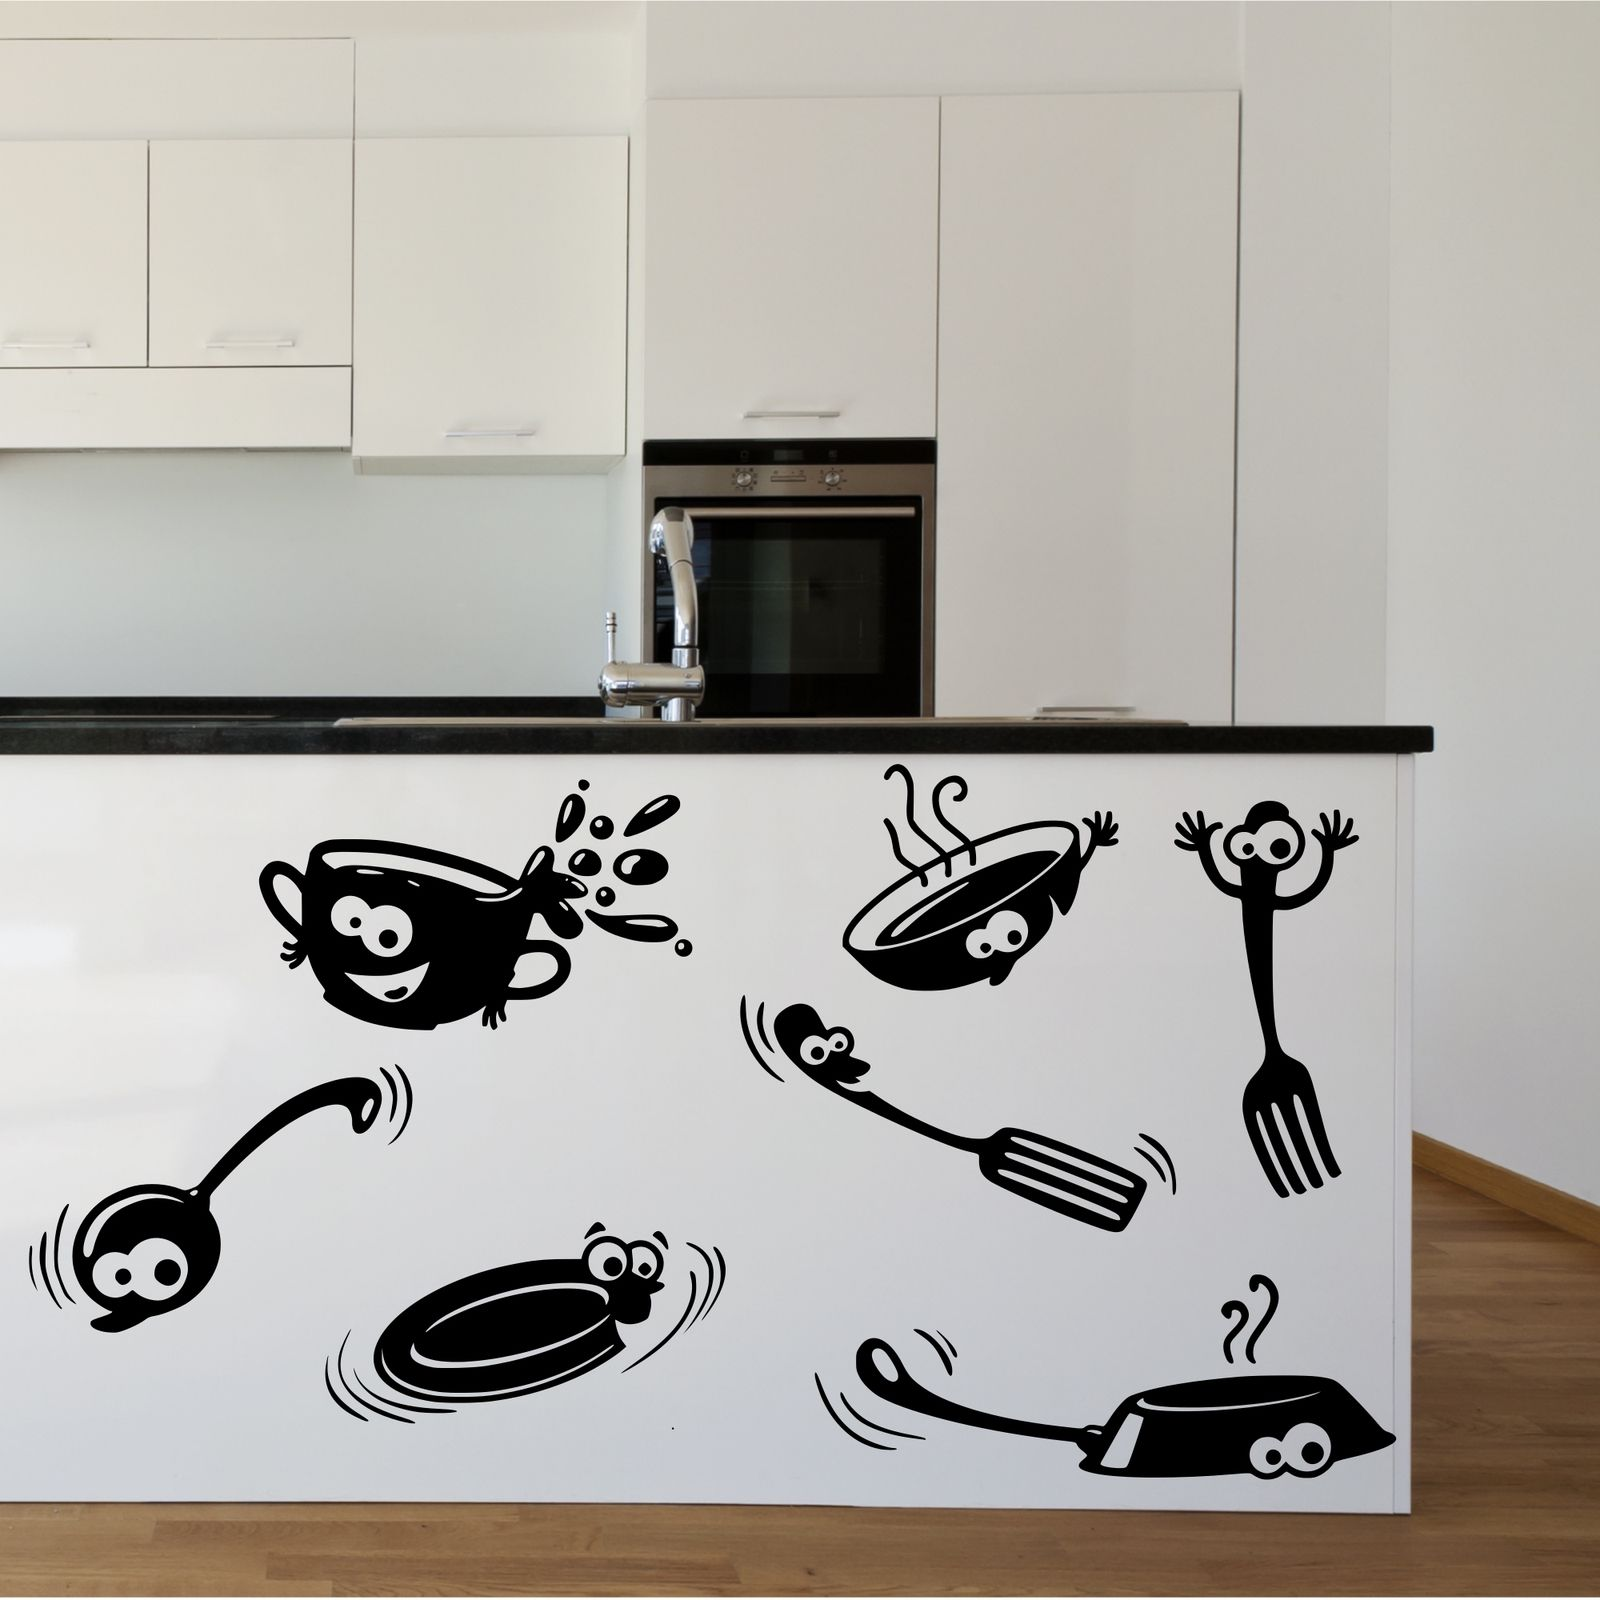 For Kitchen Wall Art Kitchen Cupboard Cartoon Stickers Vinyl Wall Art Decal Transfer